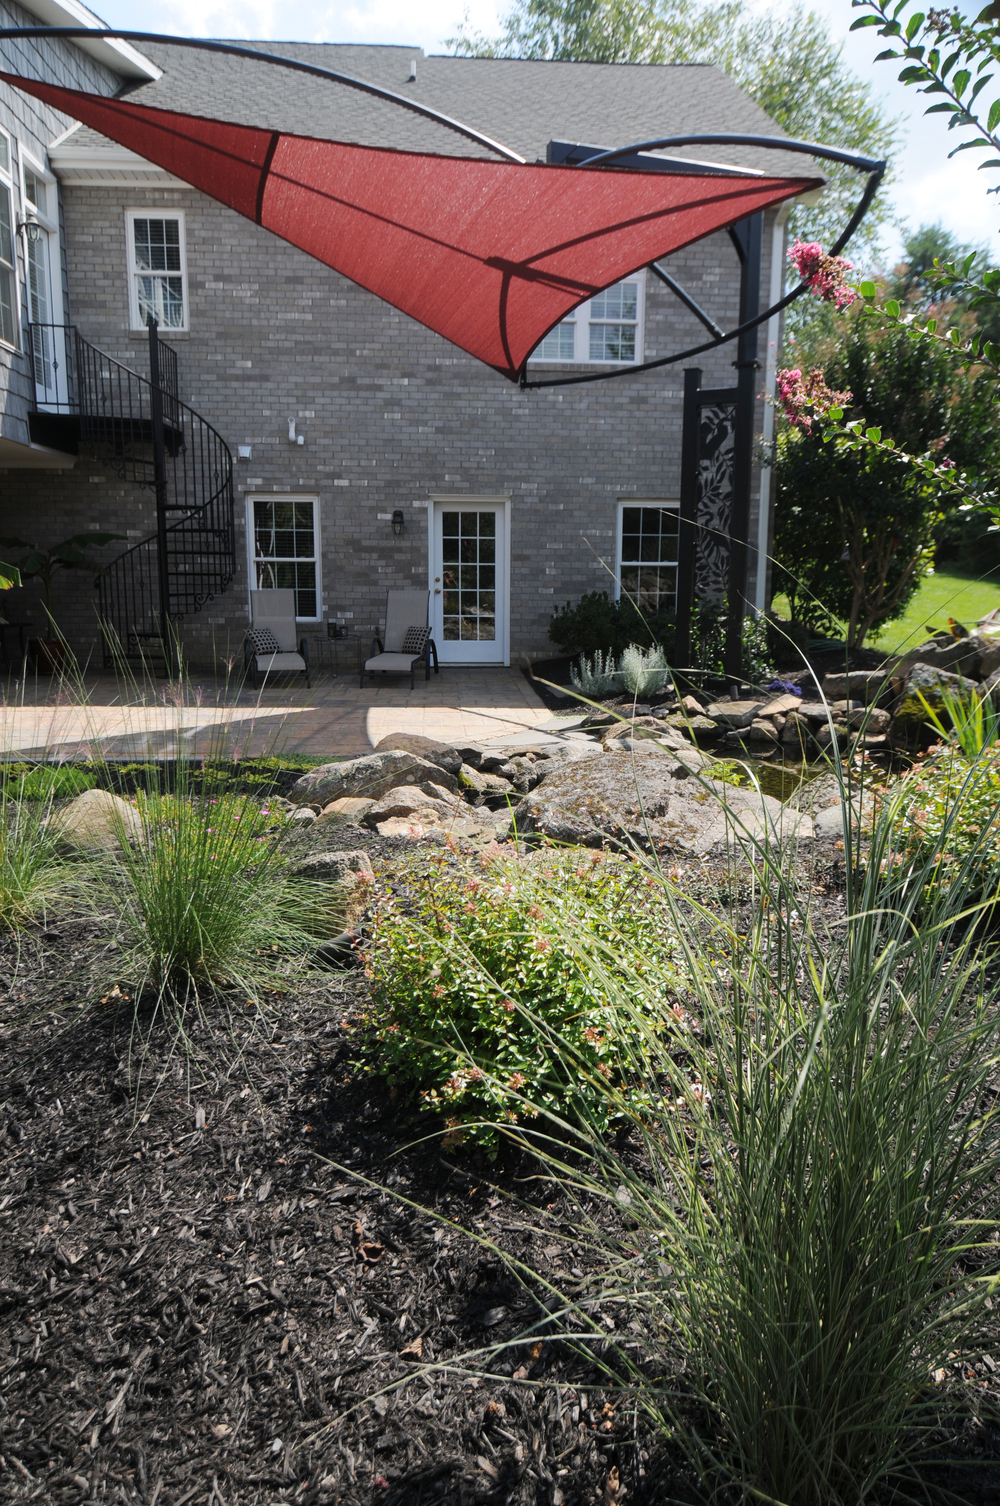 004 Water Garden Designs by Tharpe Landscaping - Outdoor Living.JPG